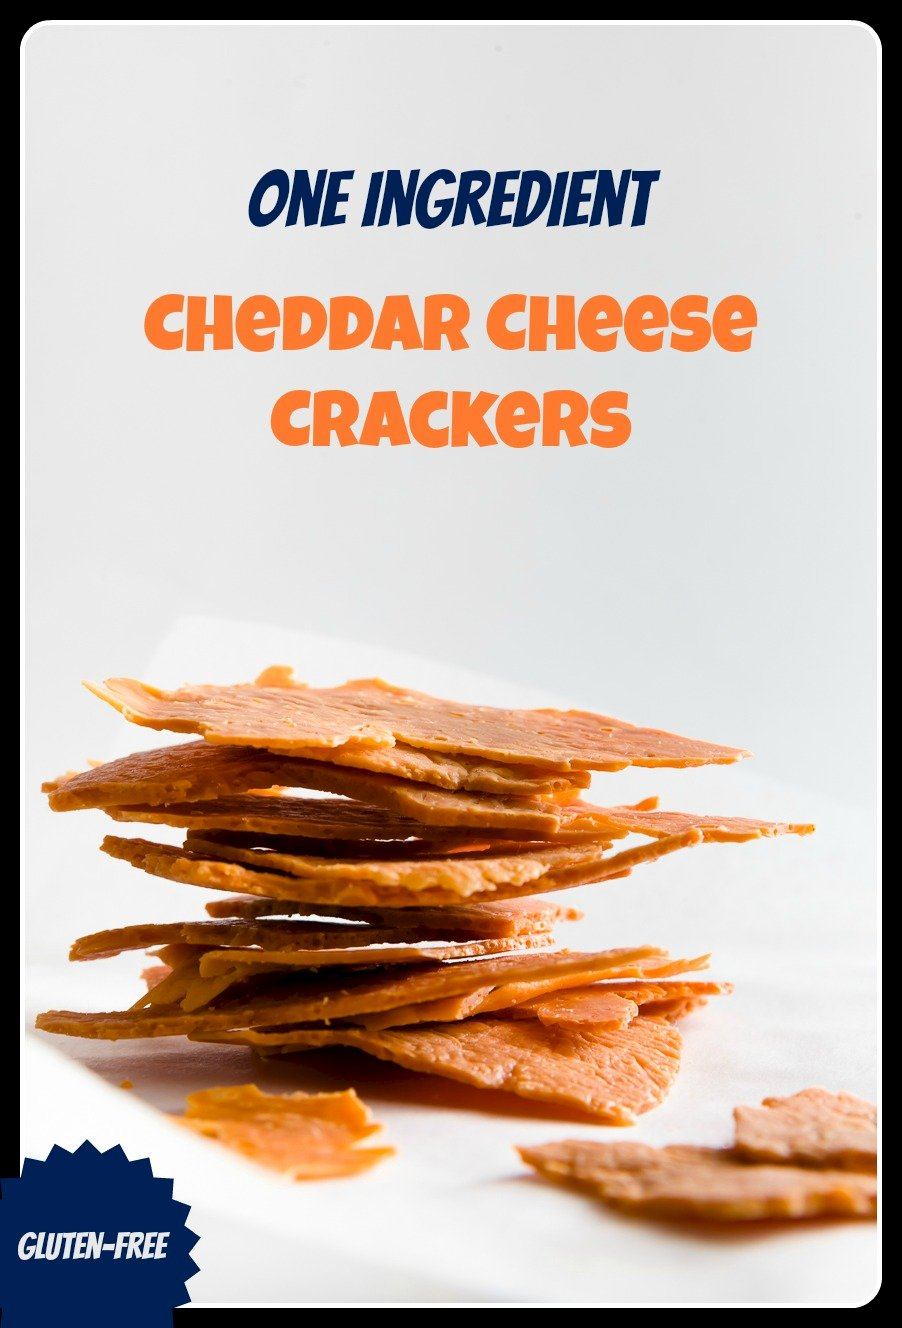 One Ingredient Cheddar Cheese Crackers